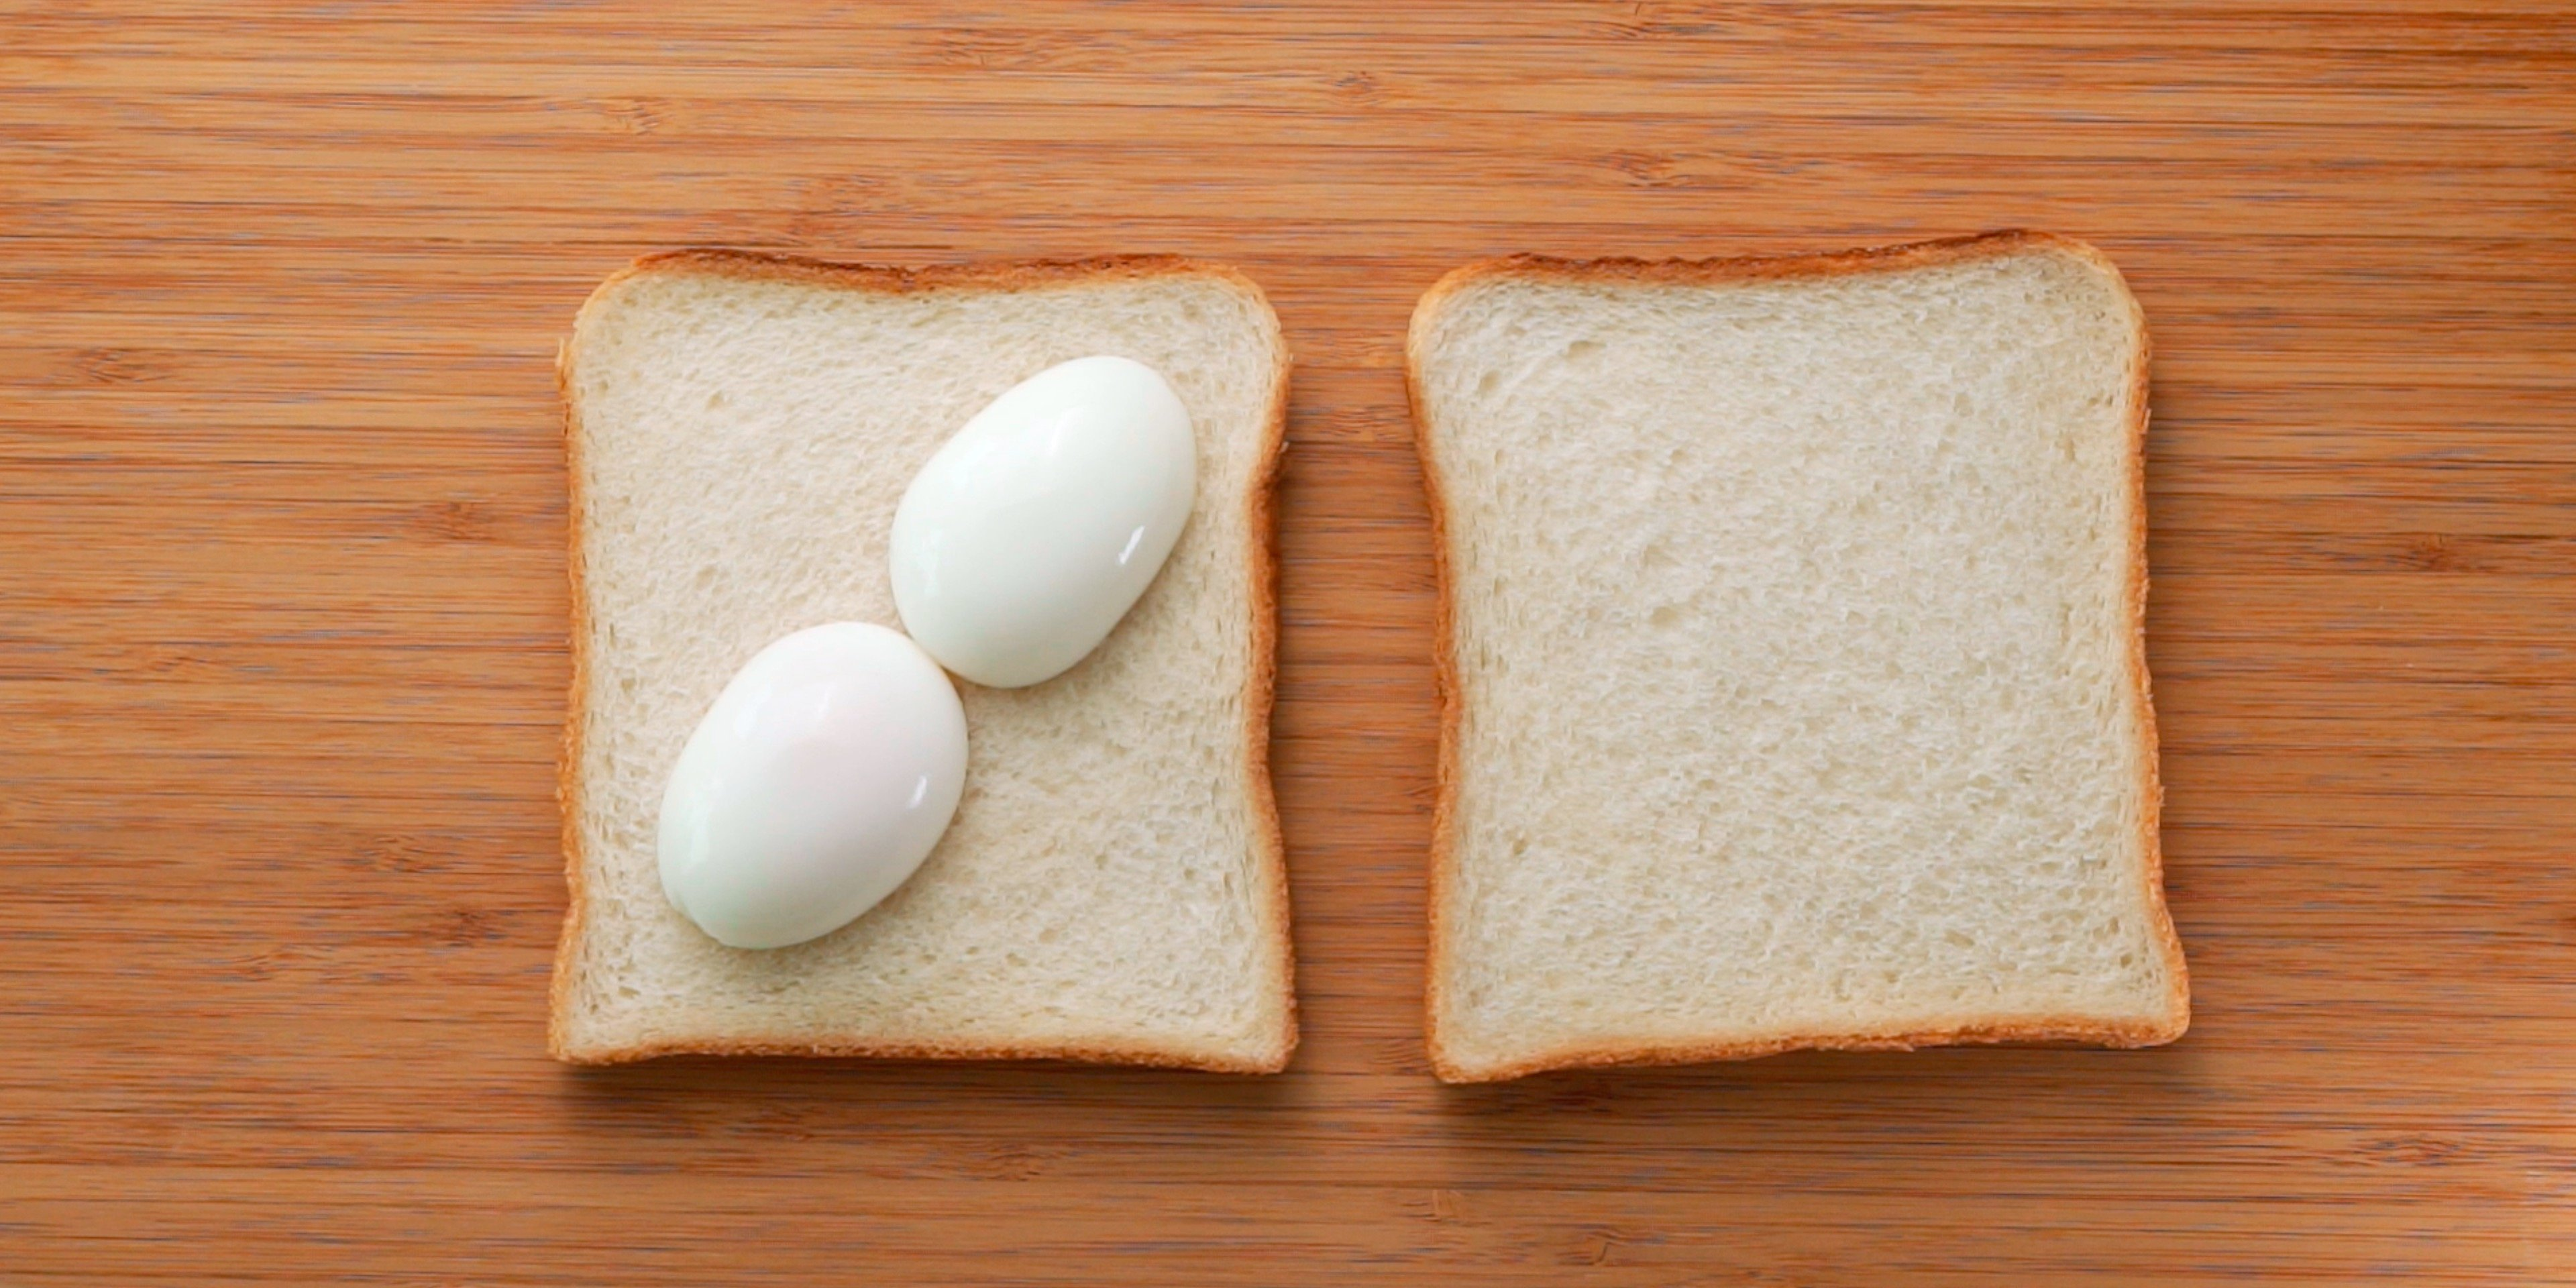 Japanese sandwich bread topped with a halved egg.